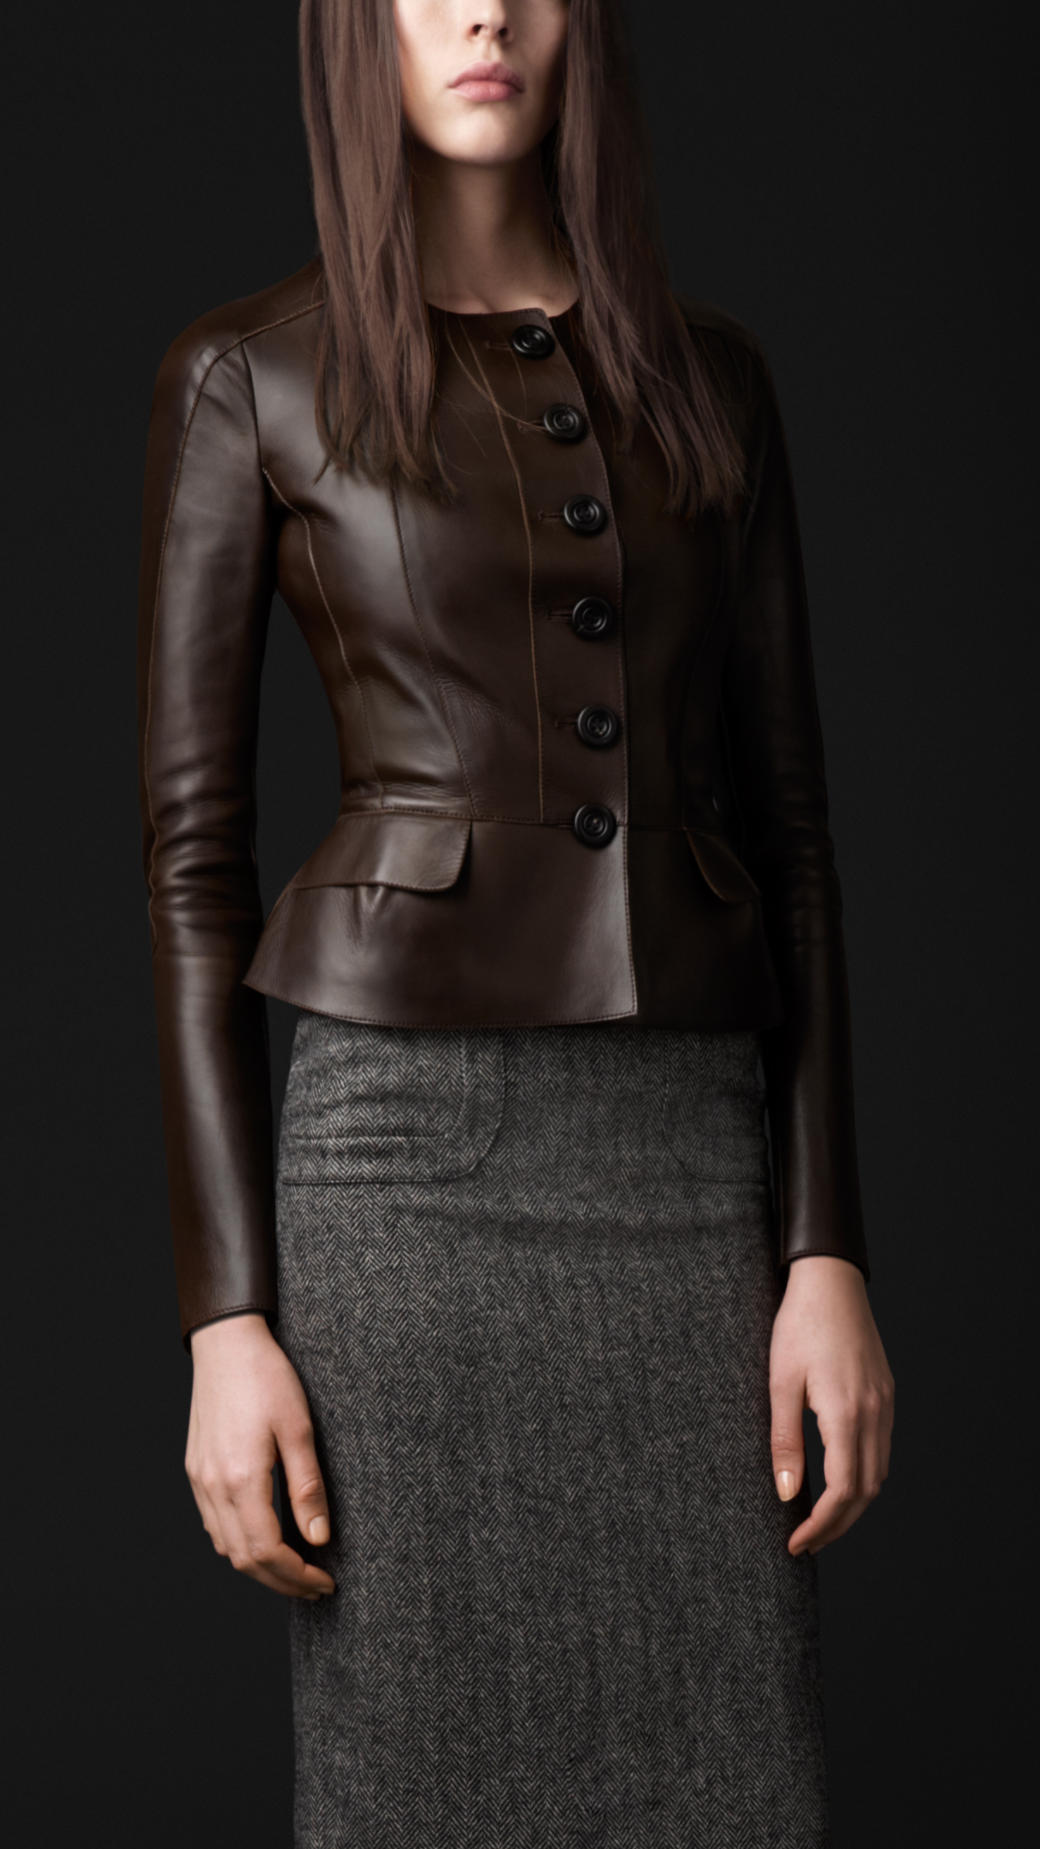 Burberry Prorsum Peplum Detail Leather Jacket In Brown Dark Cedar Brown Lyst